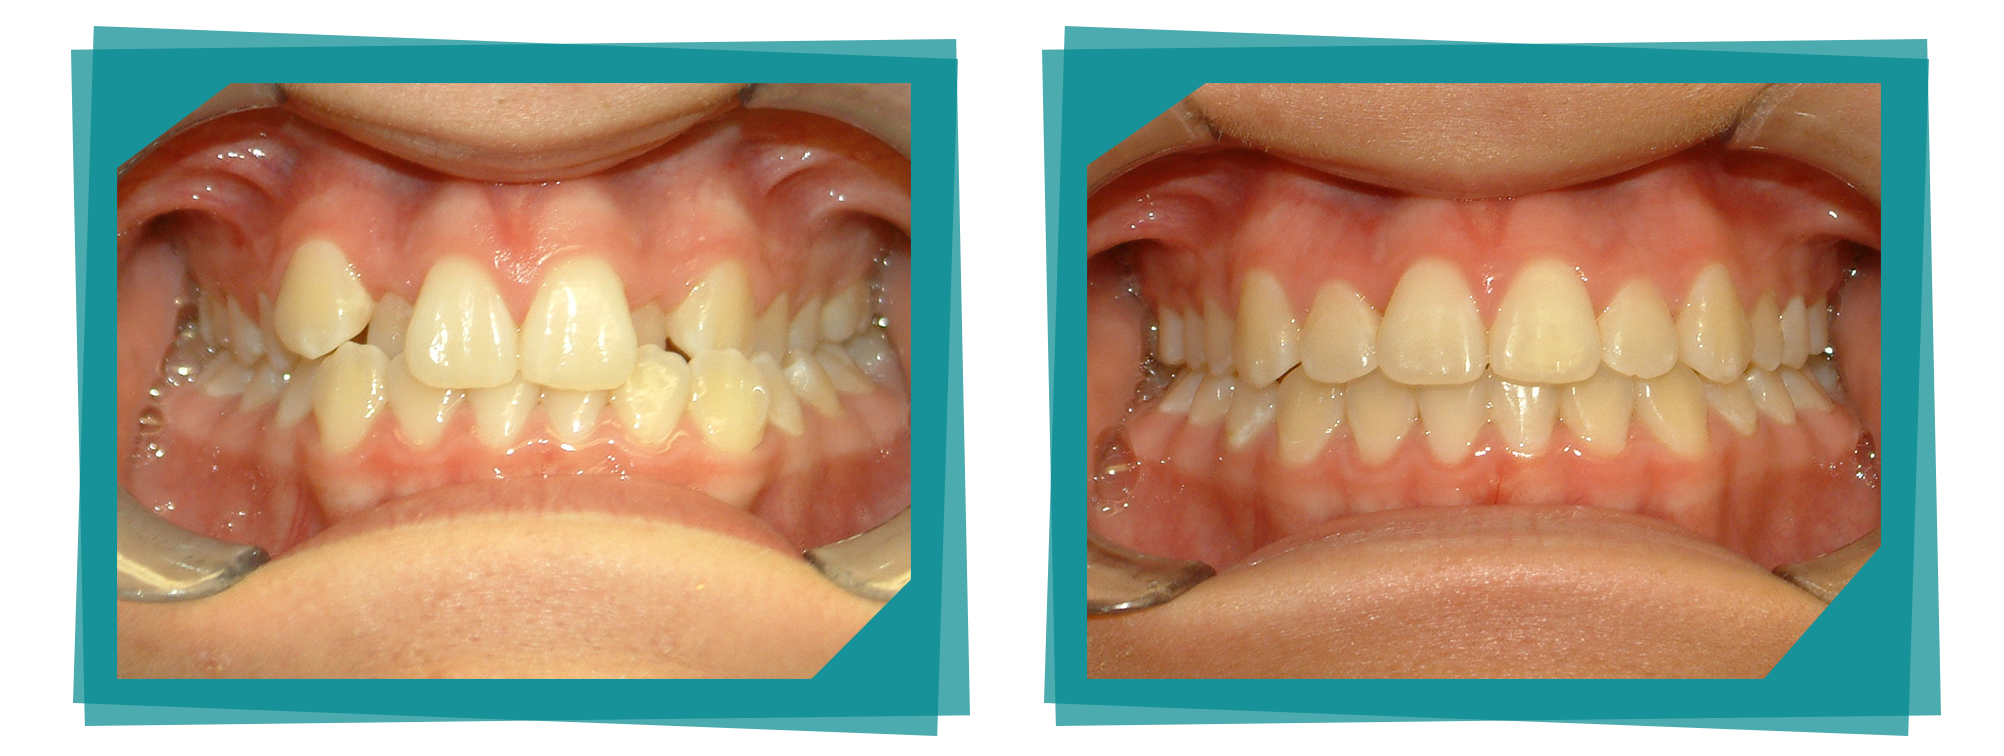 Parkcrest Dental Group before and after teeth image.